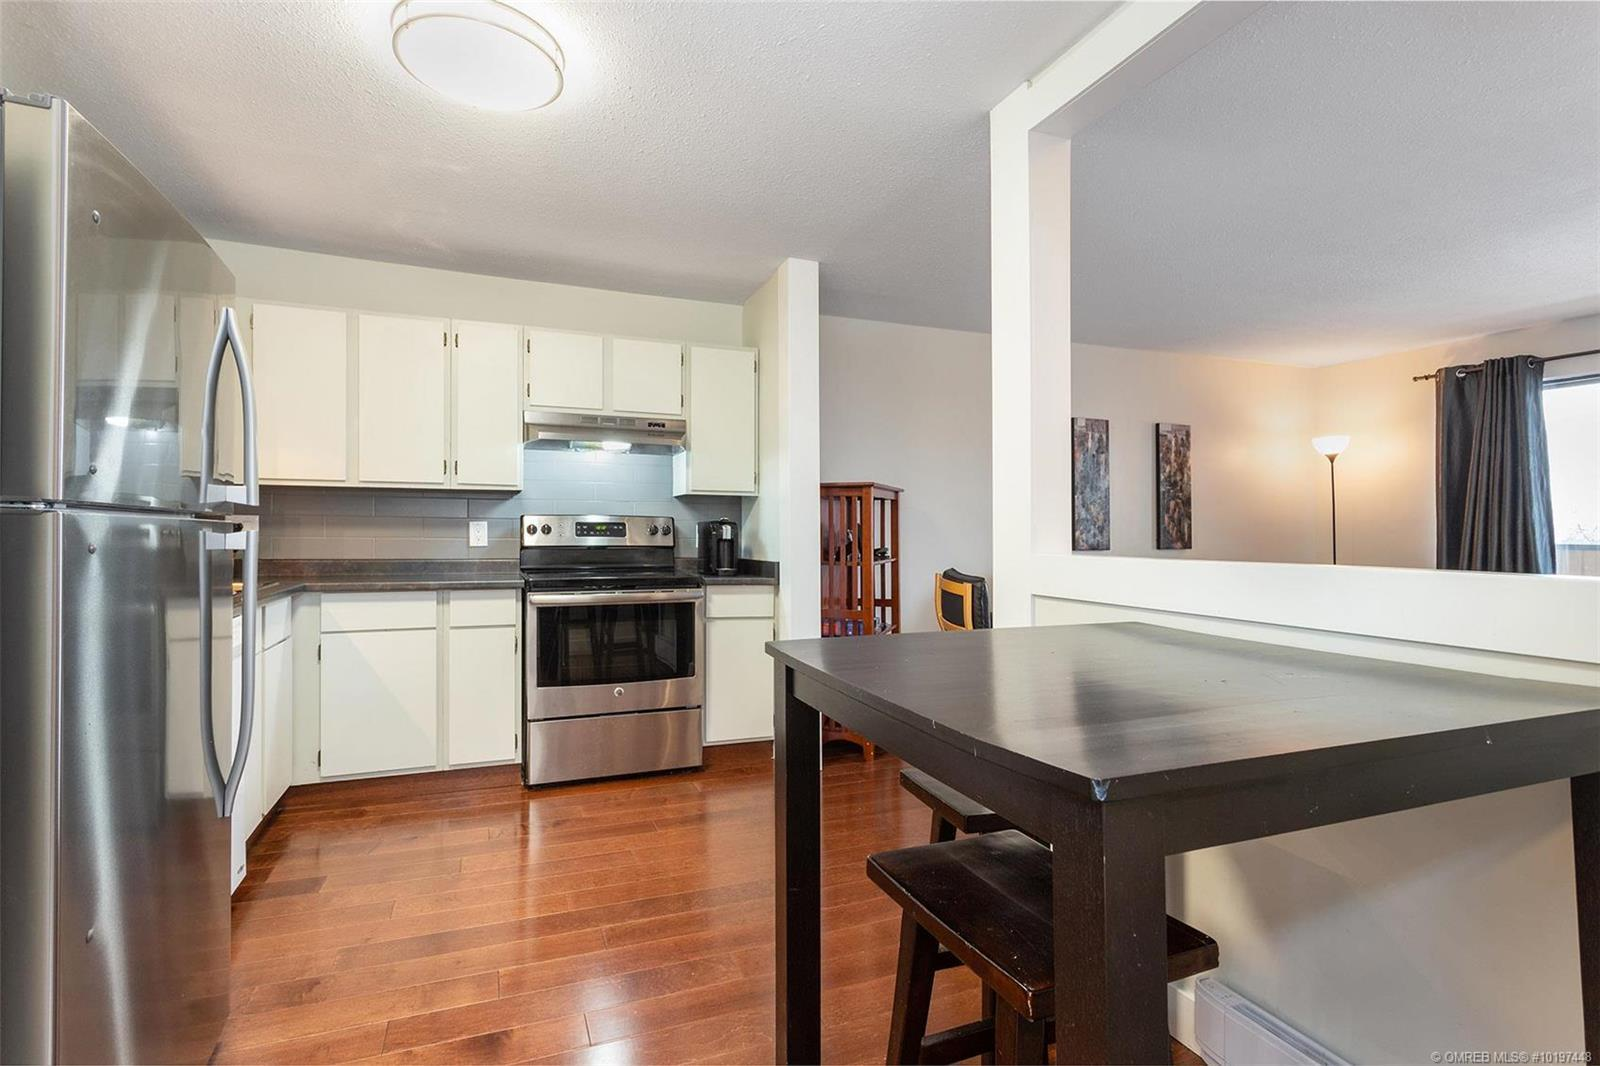 #213 1640 Ufton Court, - Kelowna Apartment for sale, 1 Bedroom (10197448)